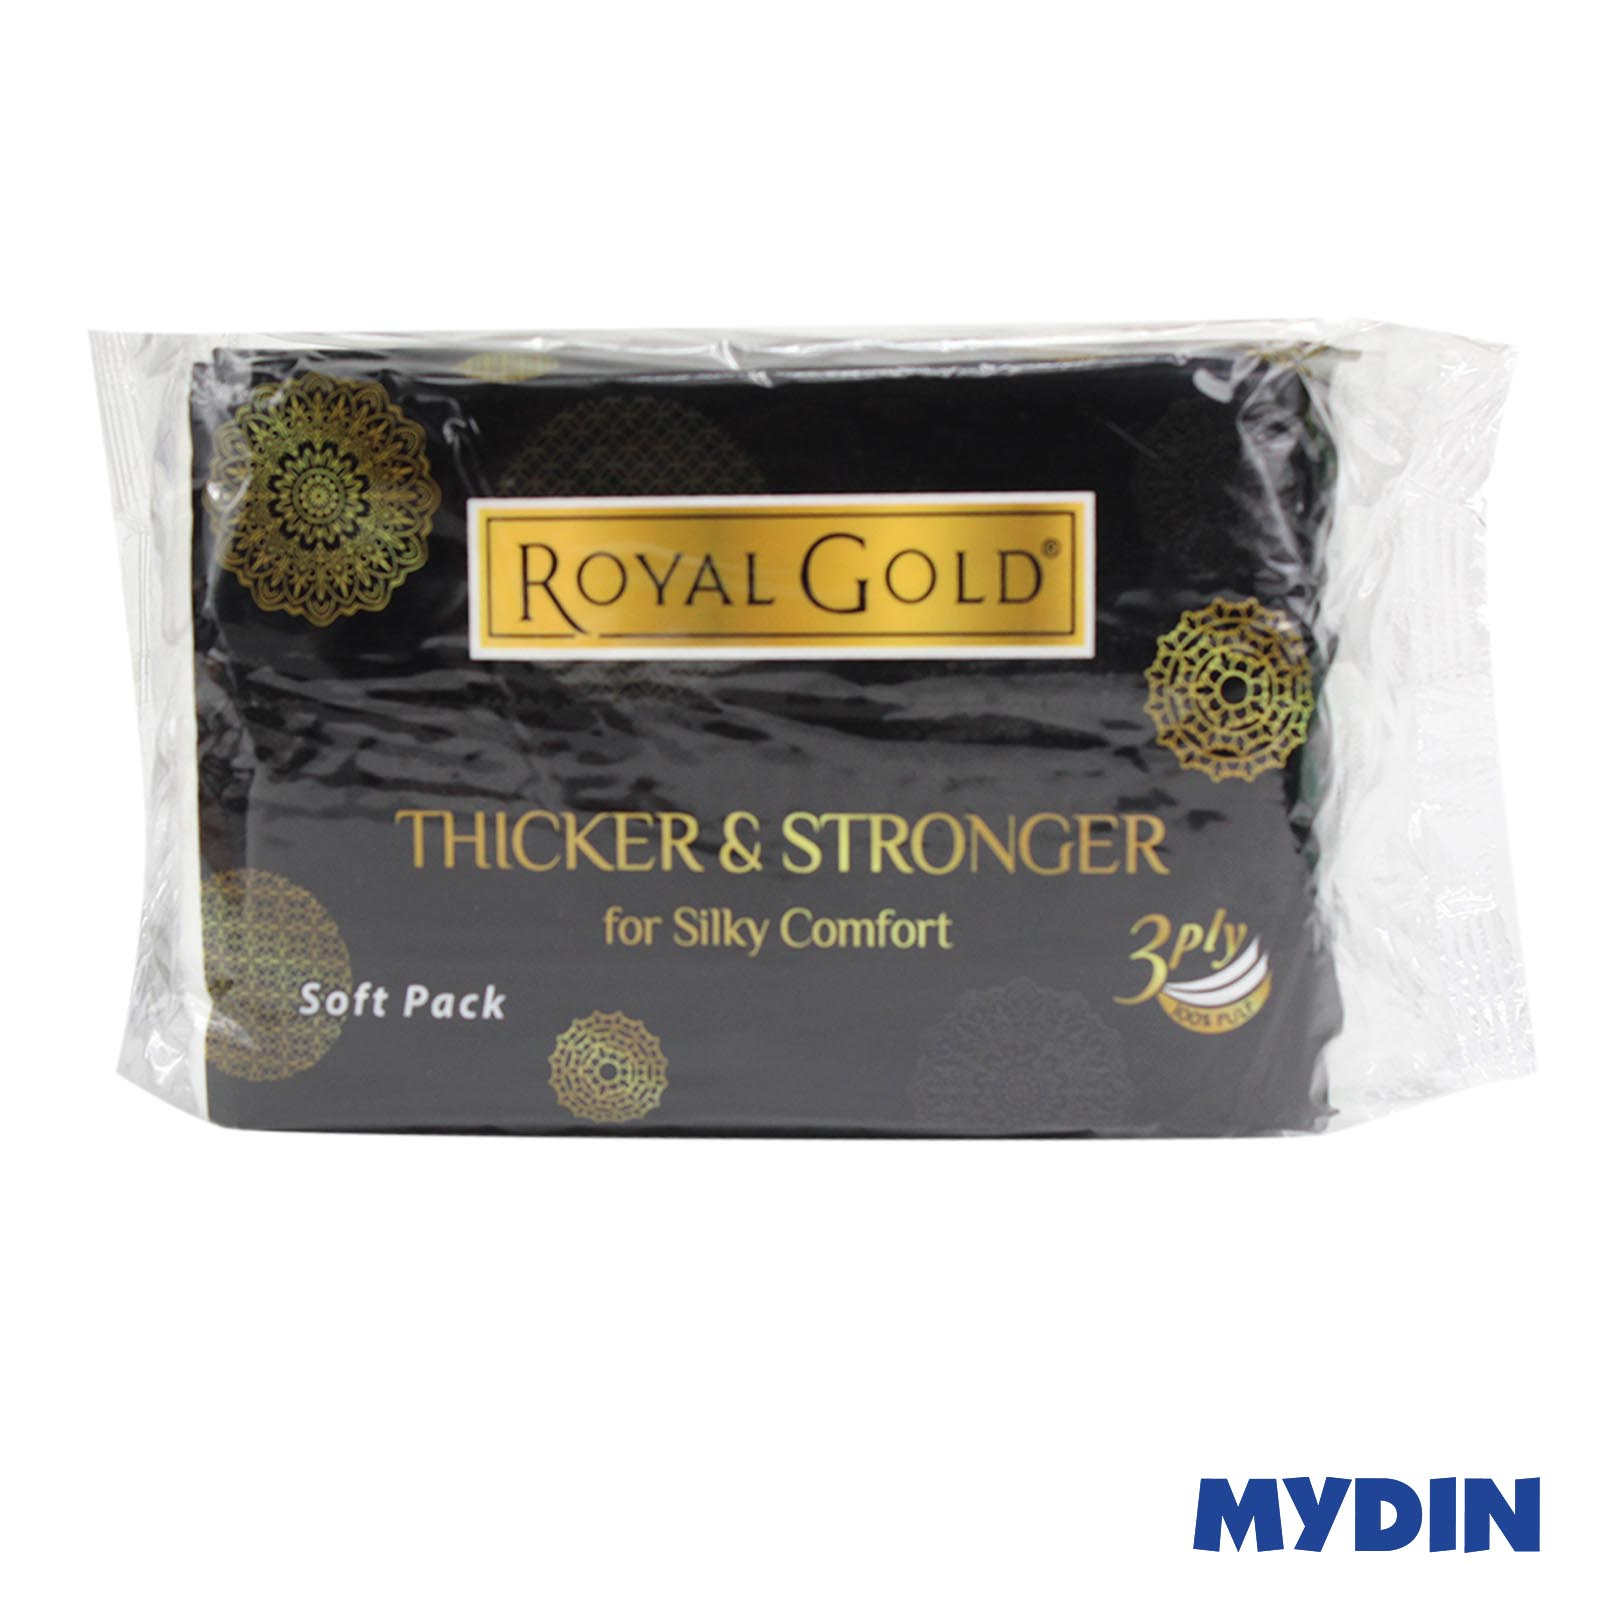 Royal Gold Luxurious Facial Tissue Soft Pack (3ply x 3 pack x 50's)